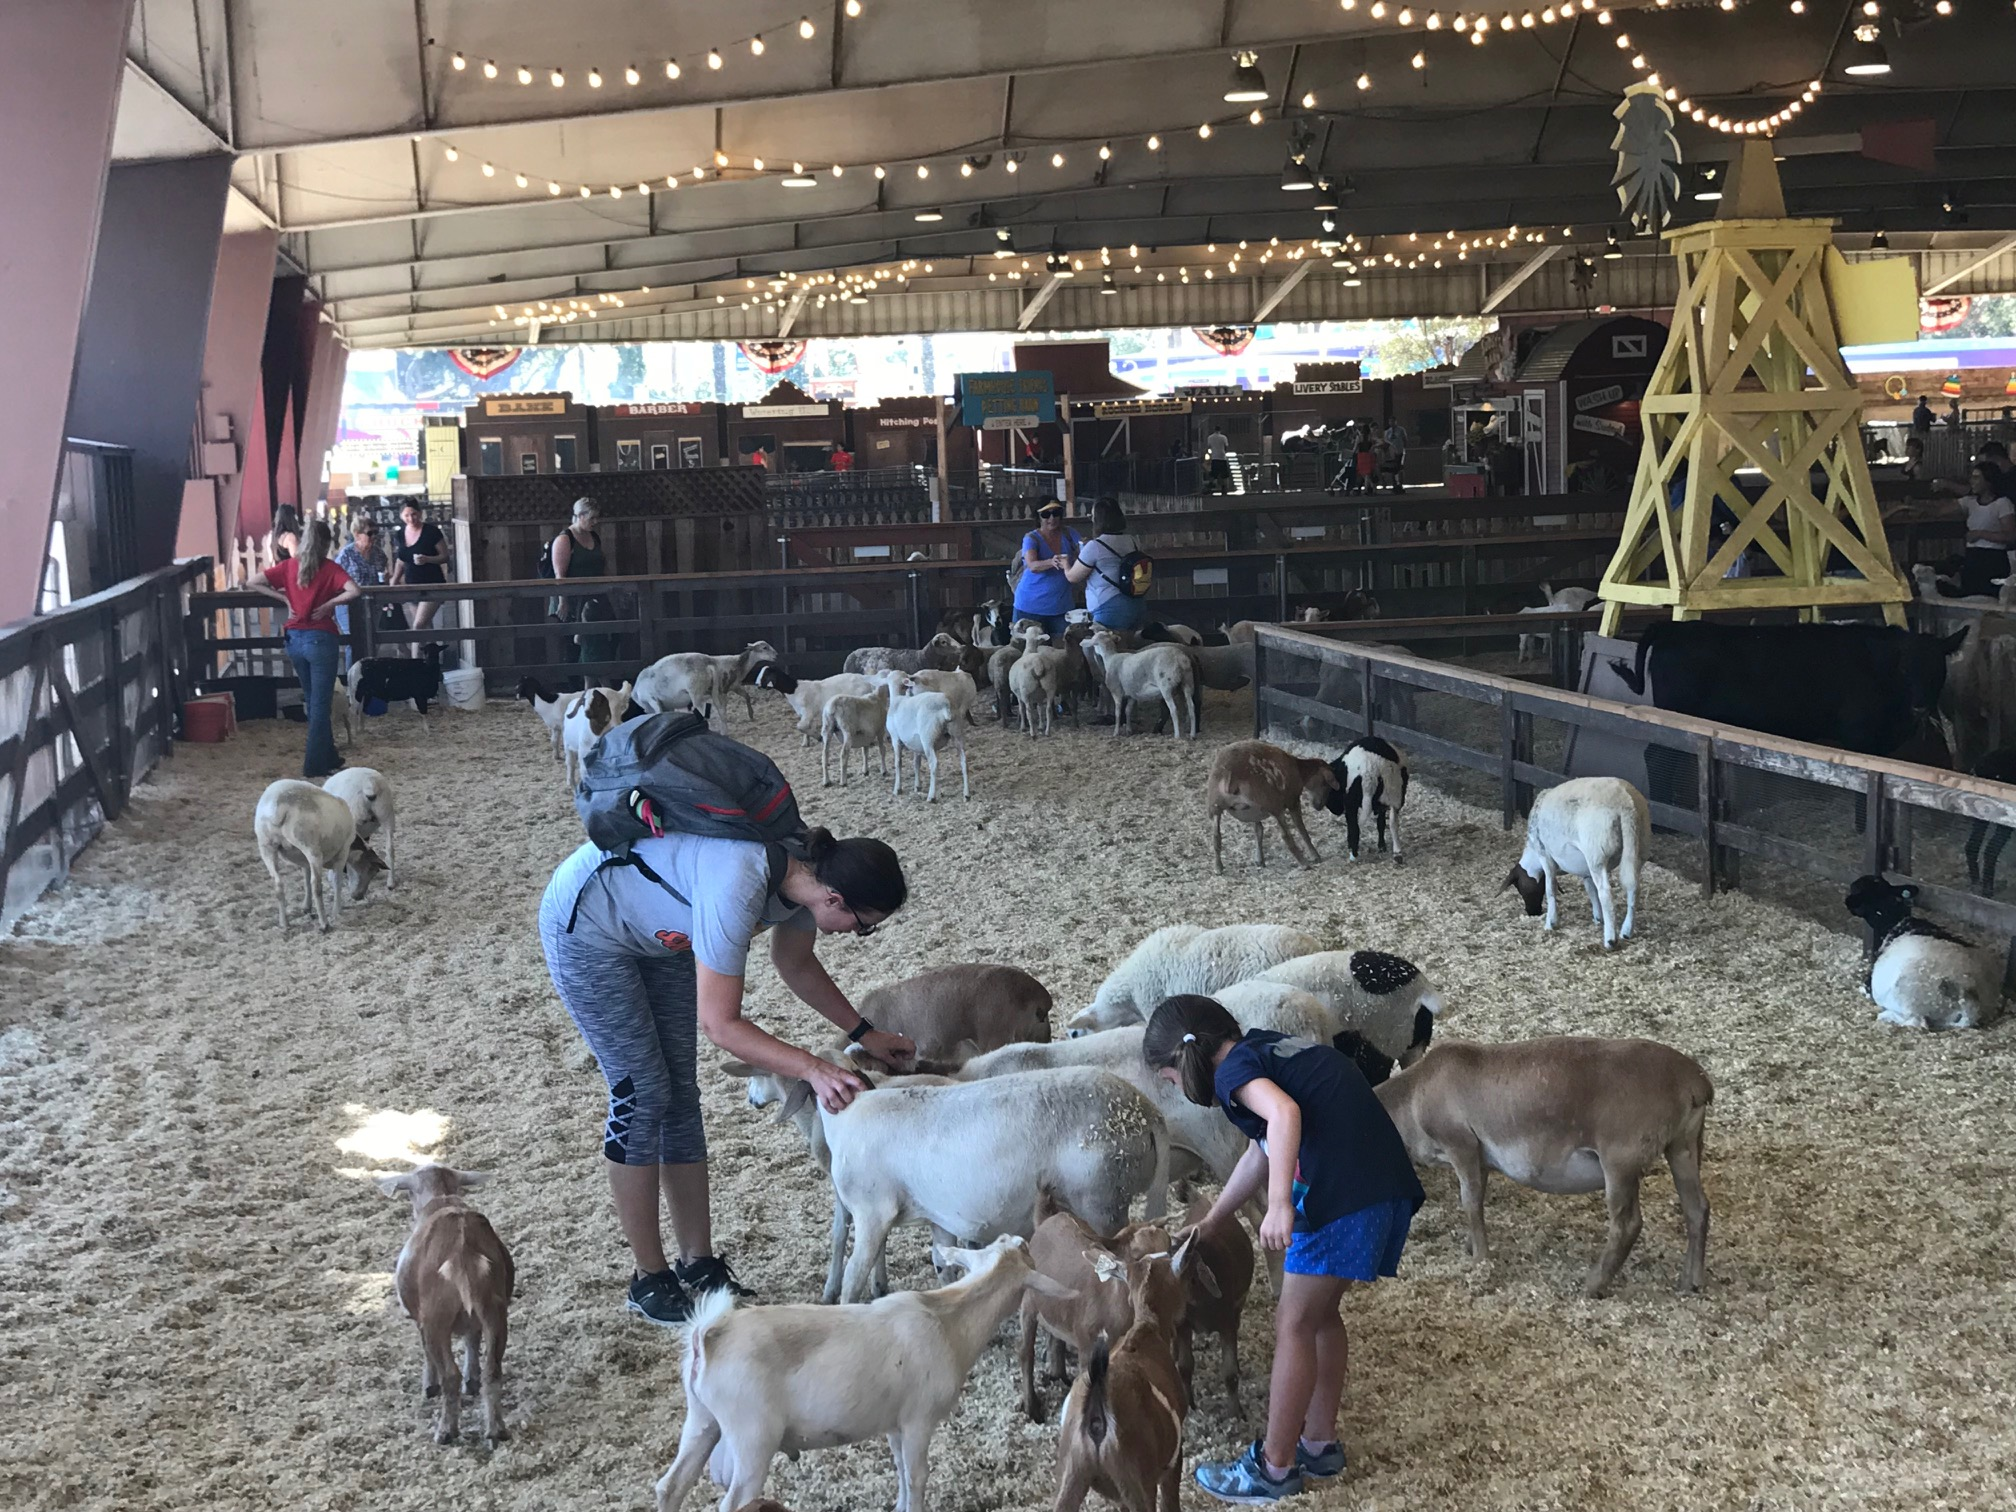 GIVEAWAY [CONTEST CLOSED] + Baby Animals at the Fair!